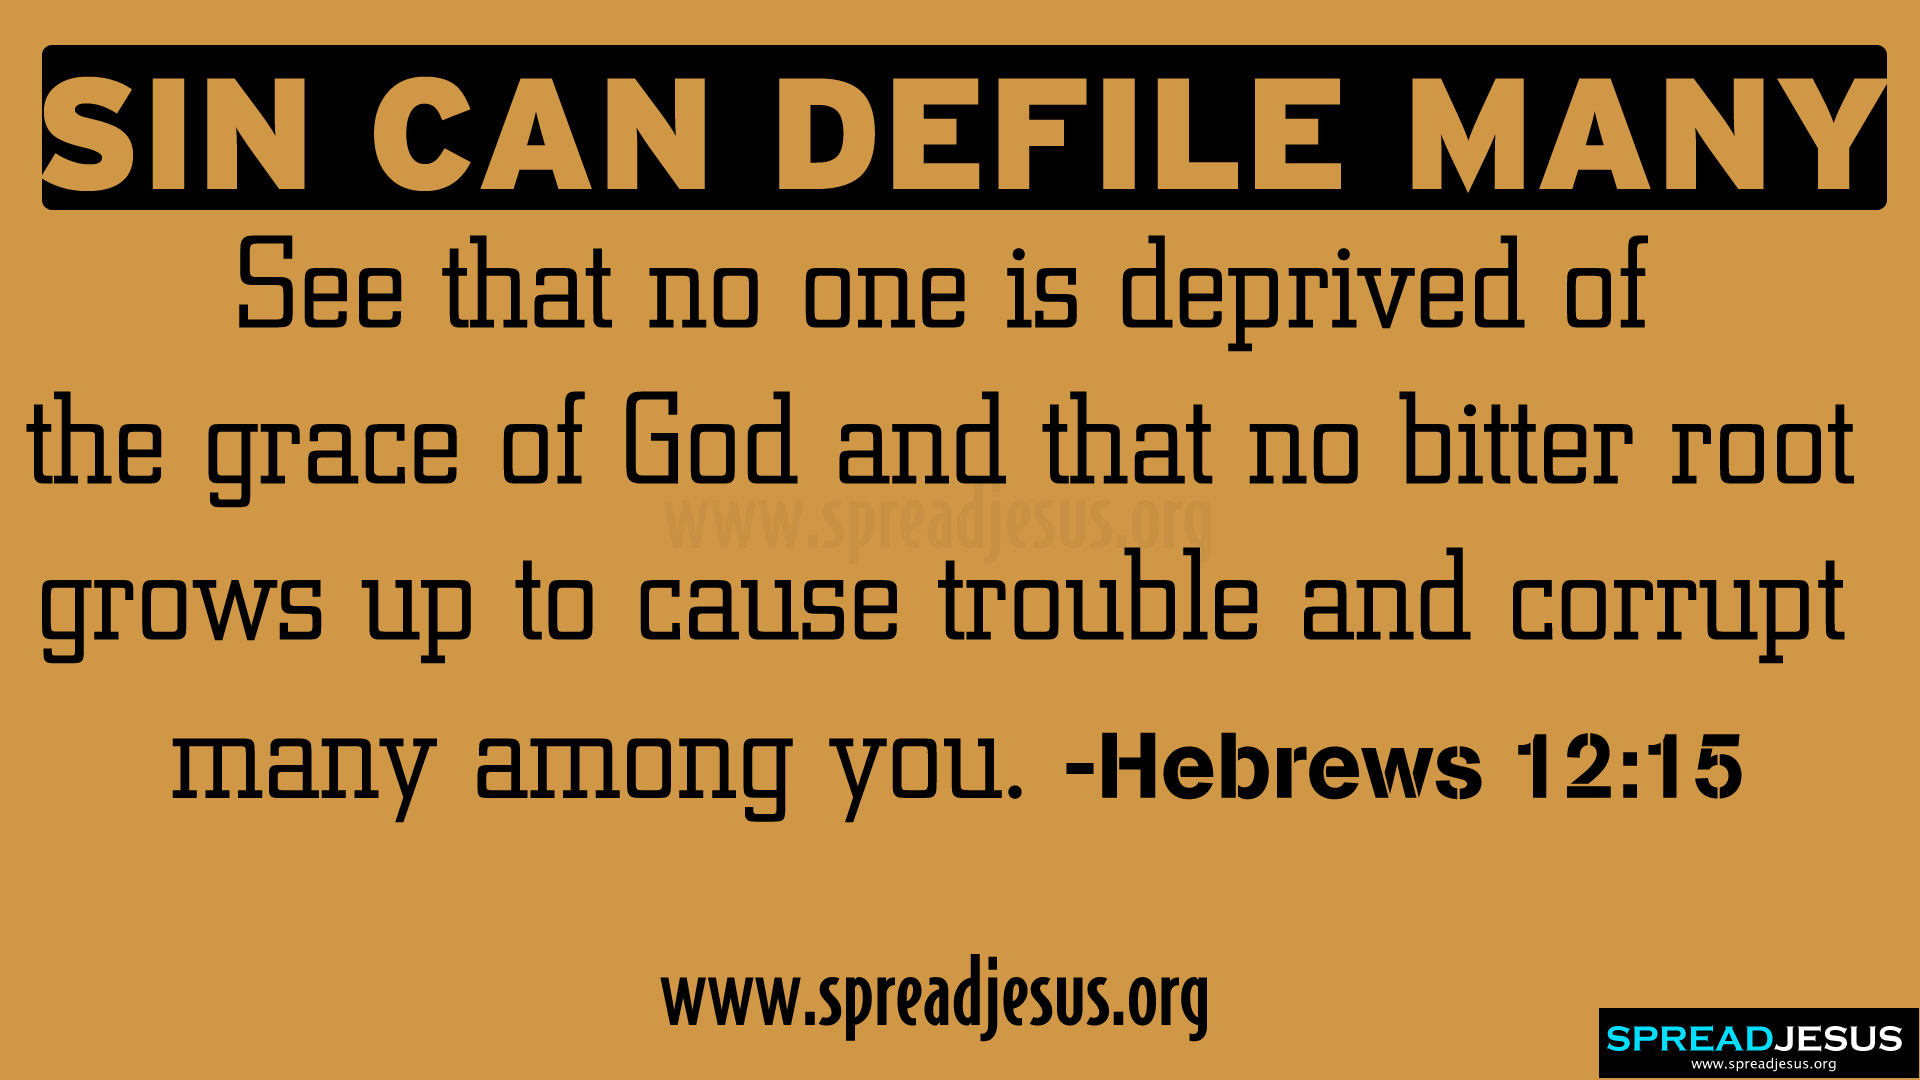 SIN CAN DEFILE MANY  BIBLE QUOTES HD-WALLPAPERS-HEBREWS 12:15